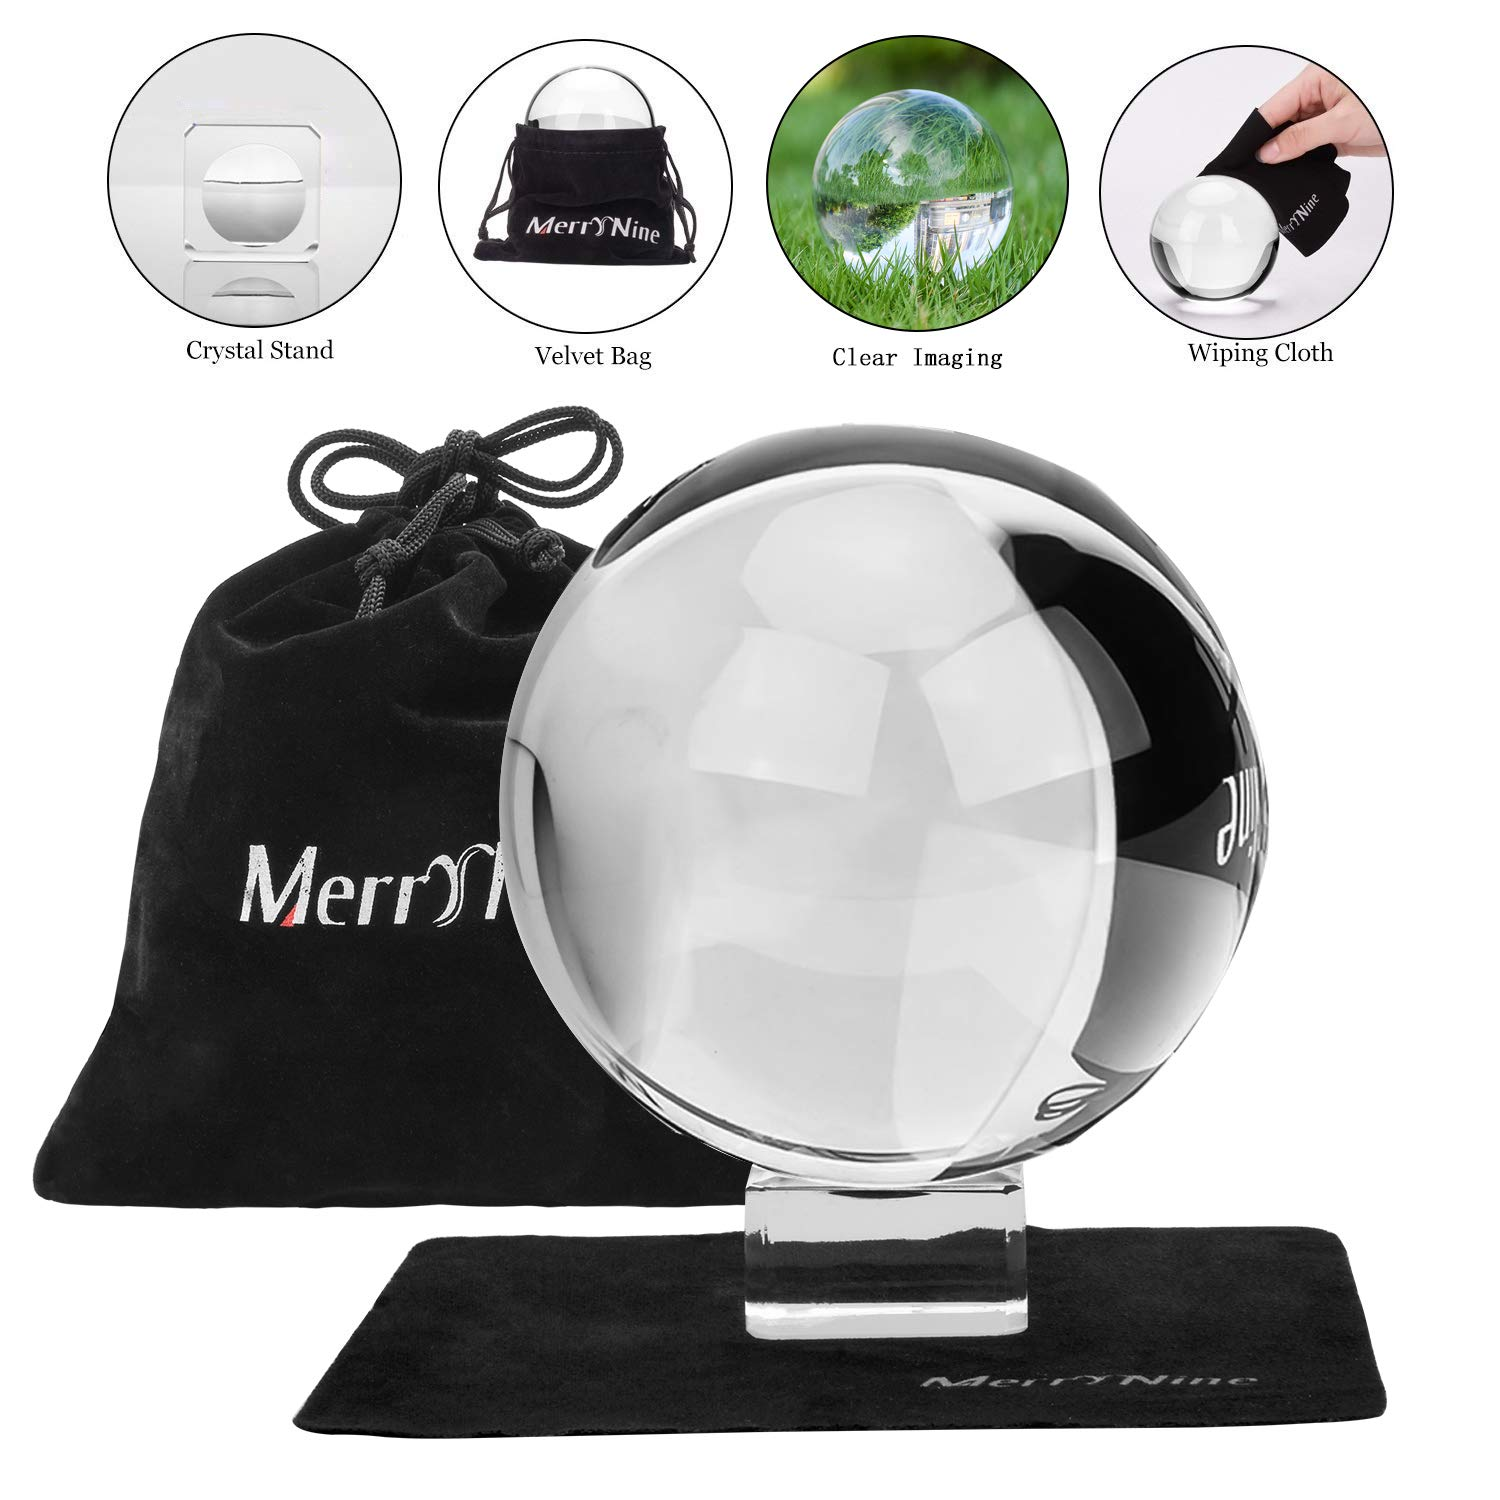 Photograph Crystal Ball with Stand and Pouch, K9 Crystal Suncatchers Ball with Microfiber Pouch, Decorative and Photography Accessory (110mm/4.33'' Set, K9 Clear) by MerryNine